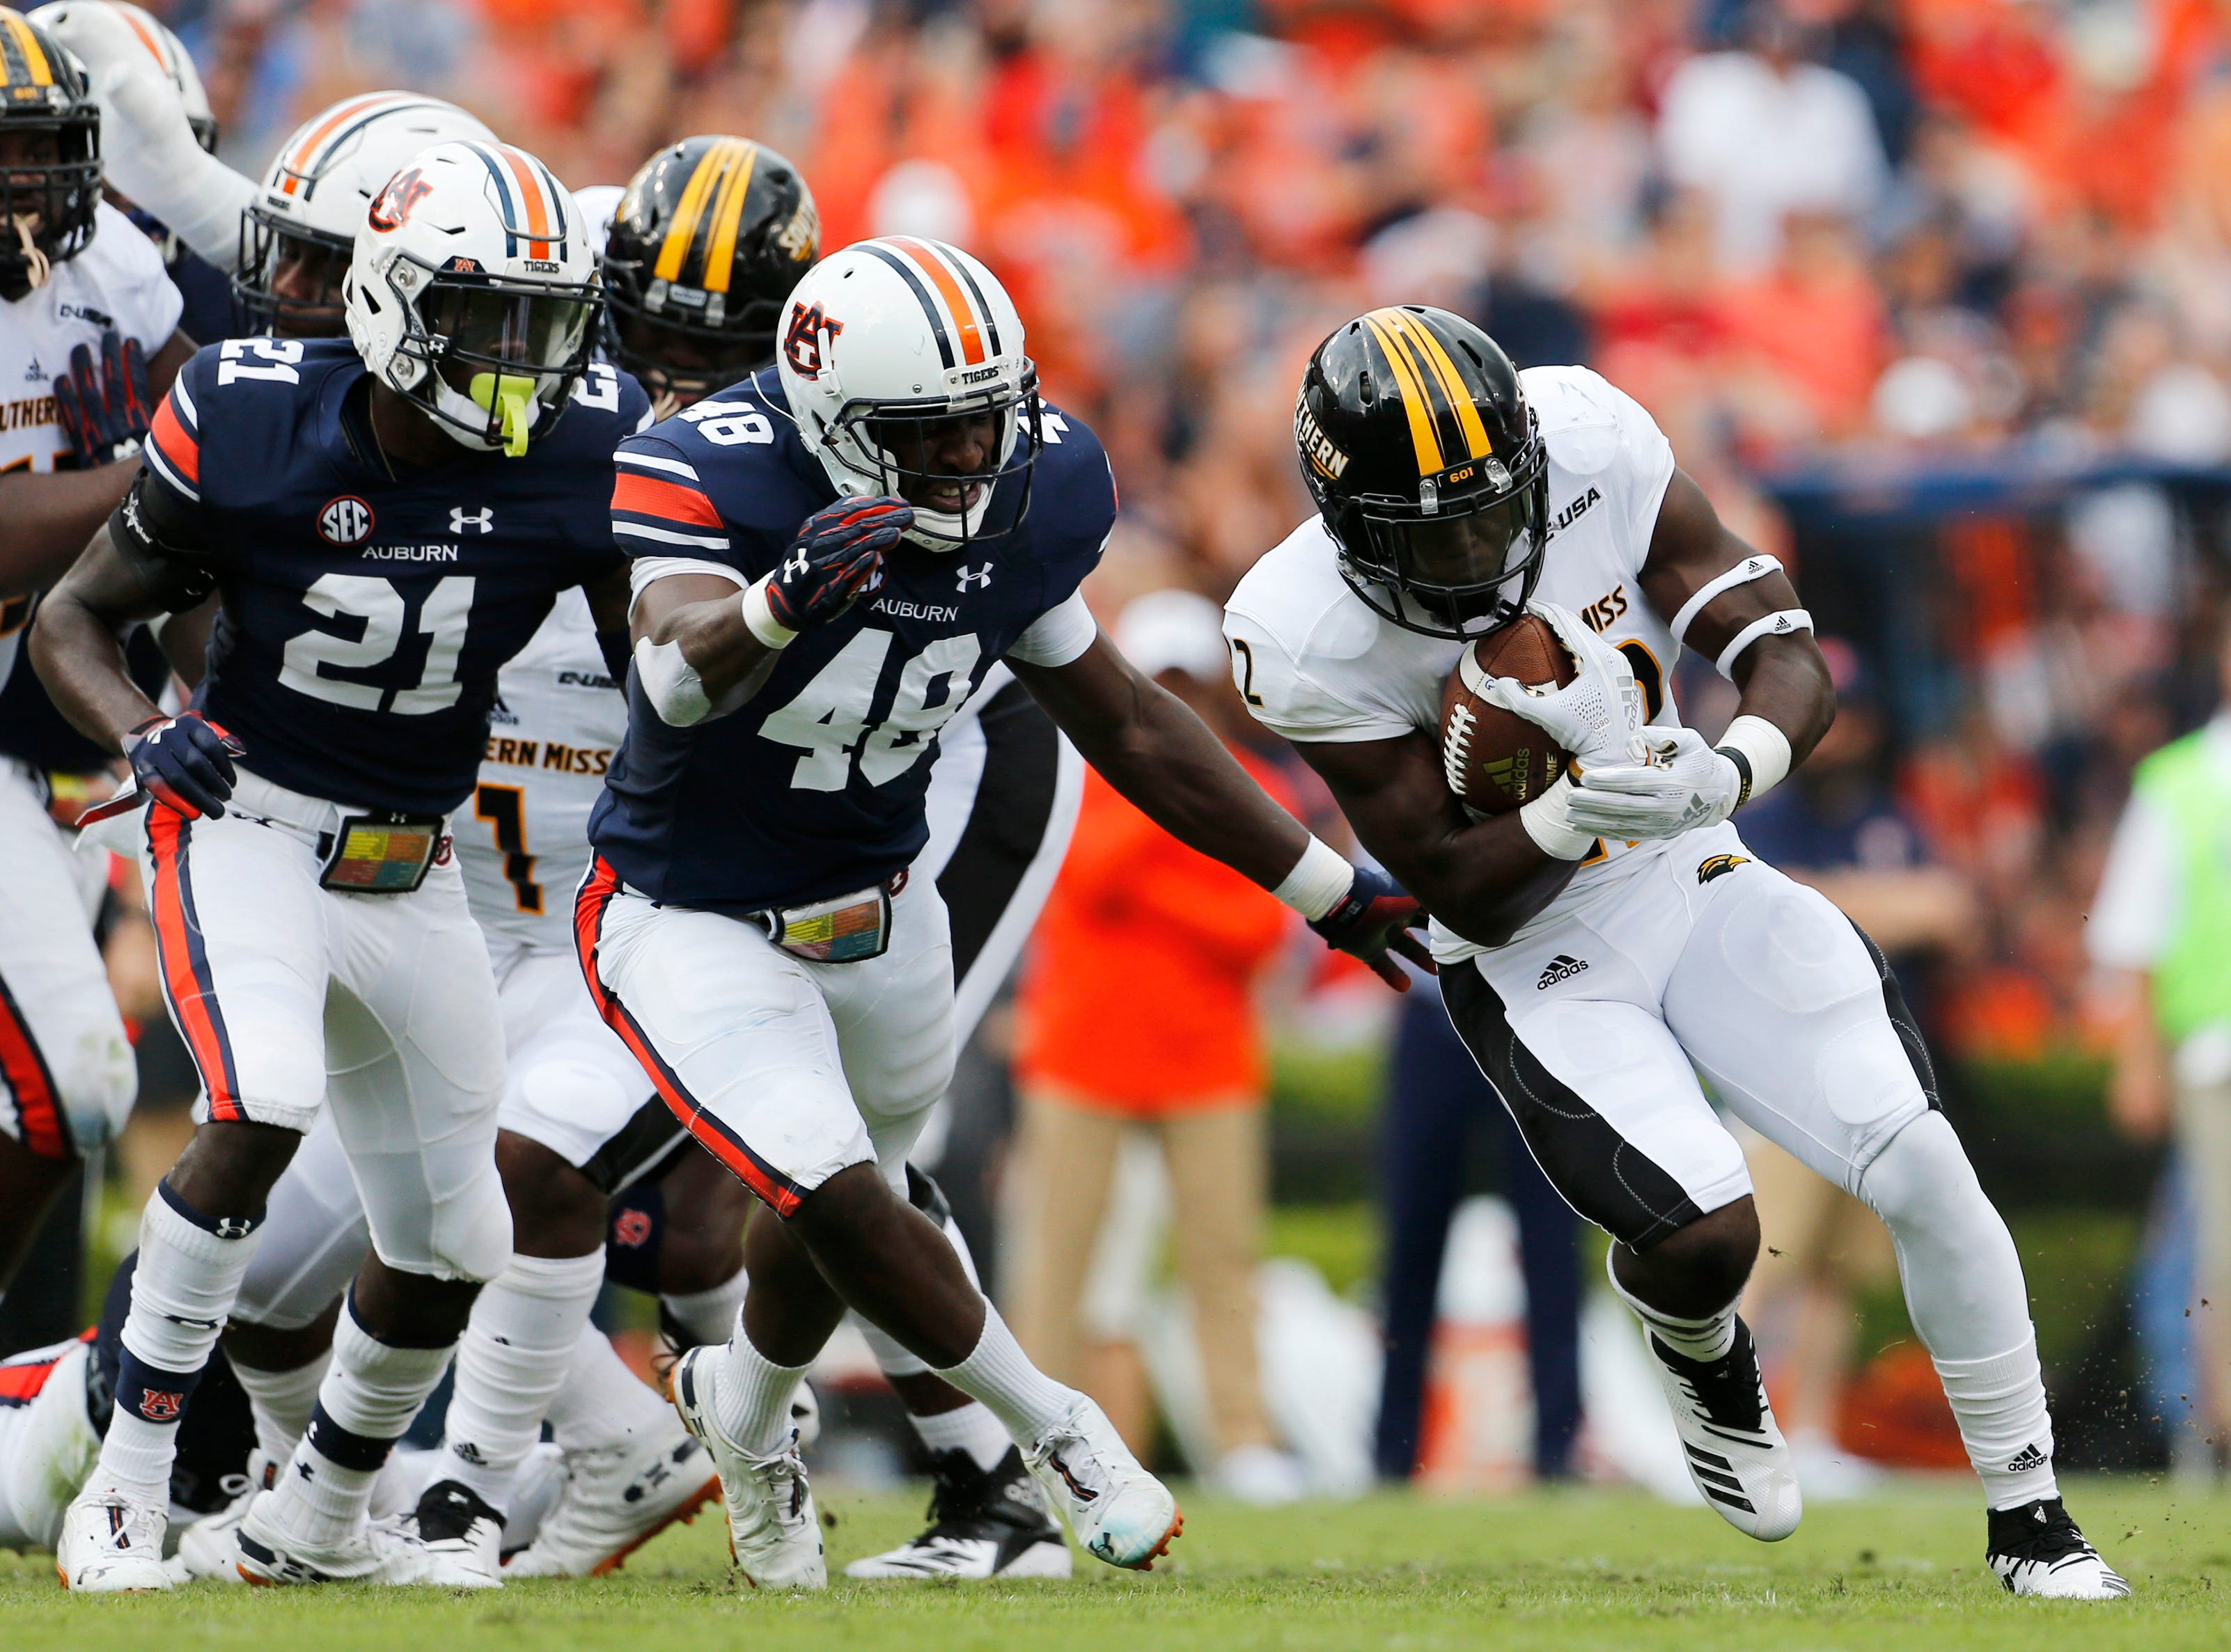 Sep 29, 2018; Auburn, AL, USA; Southern Miss Golden Eagles running back Trivenskey Mosley (22) is chased by Auburn Tigers defensive back Smoke Monday (21) and Montavious Atkinson (48) during the first quarter at Jordan-Hare Stadium. Mandatory Credit: John Reed-USA TODAY Sports